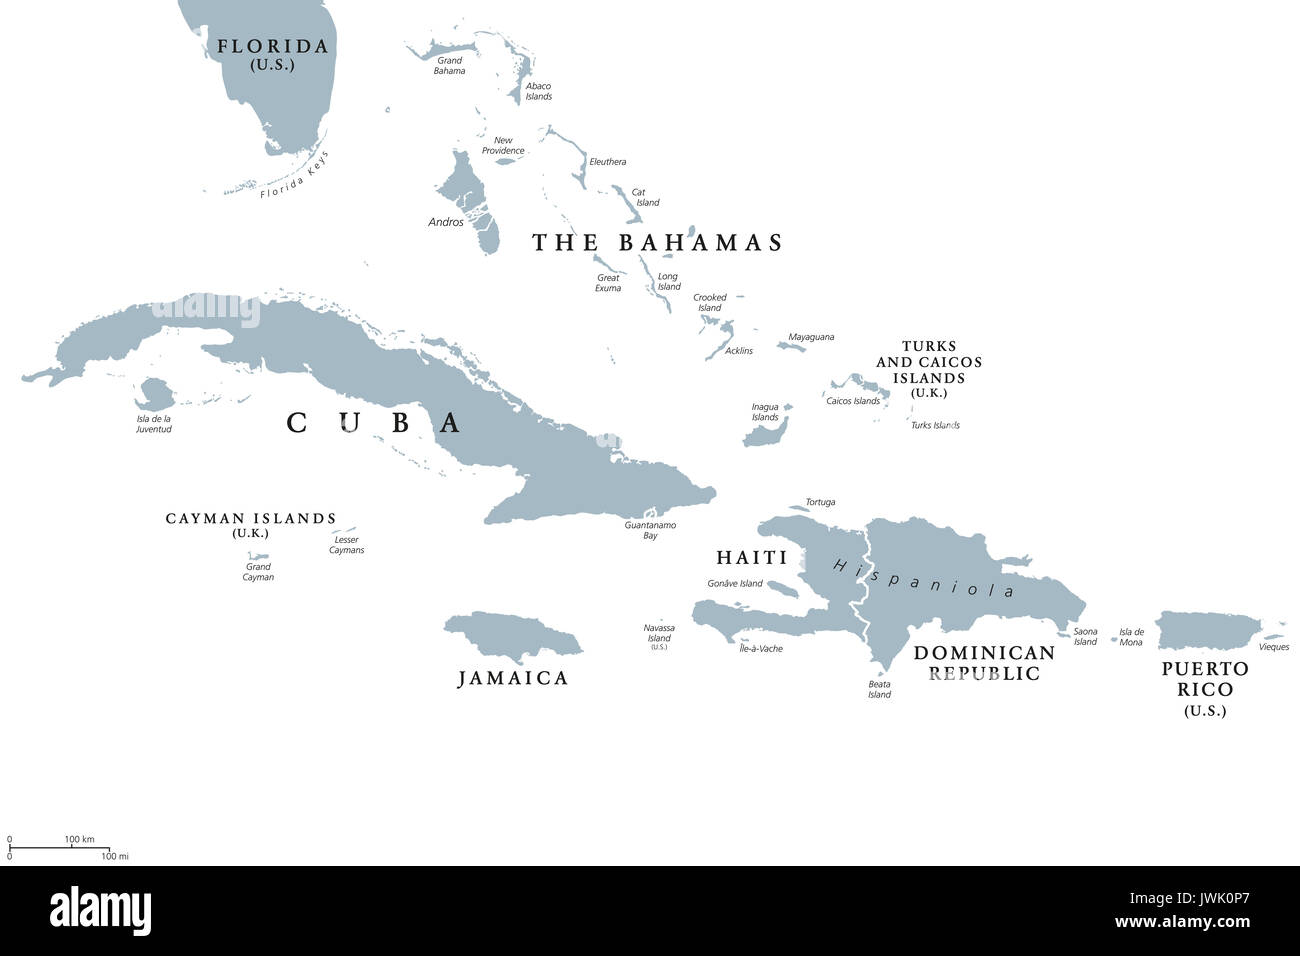 Greater Antilles Political Map With English Labeling Grouping Of - Jamaica map caribbean sea